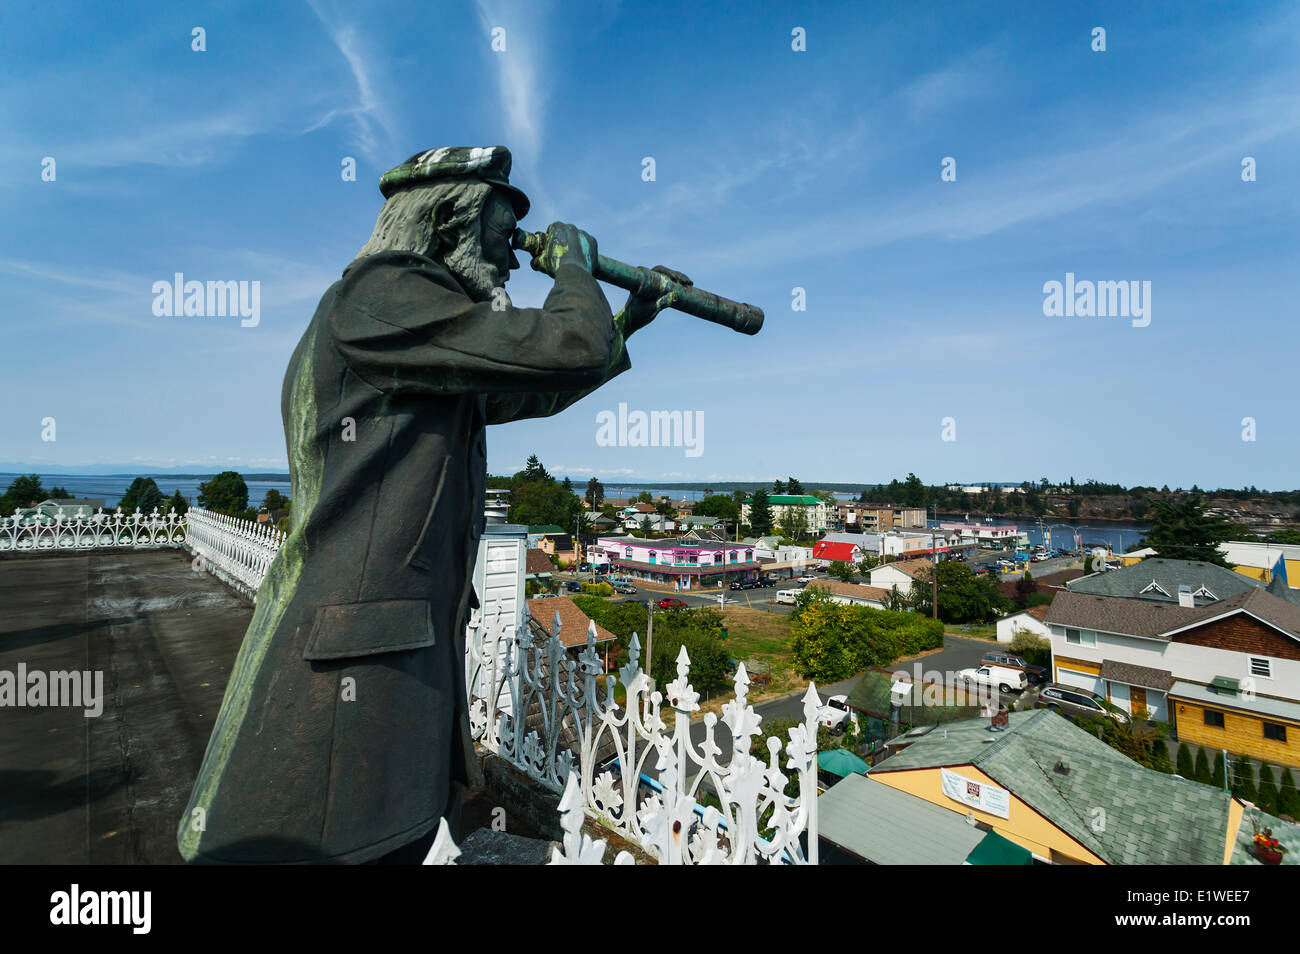 A bronze statue seafaring history keeps a watch out over the town Chemainus high atop a building.  Chemainus Vancouver - Stock Image